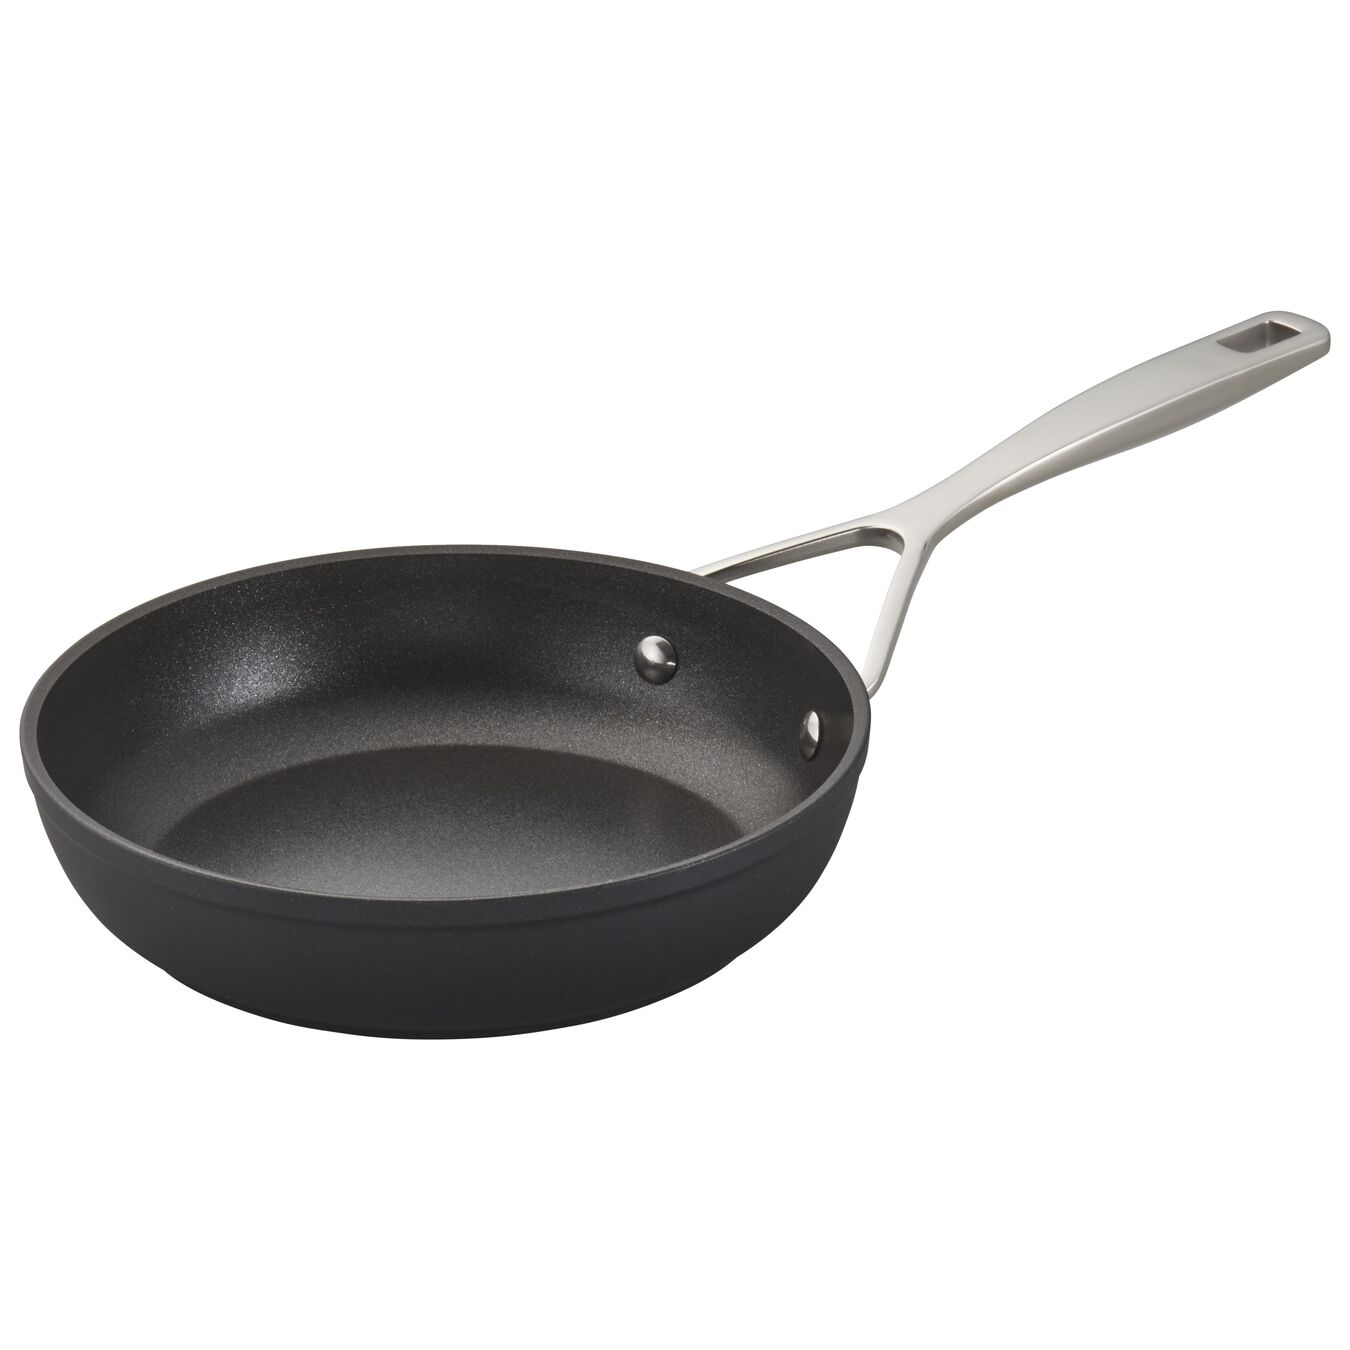 8-inch Aluminum Nonstick Fry Pan,,large 3